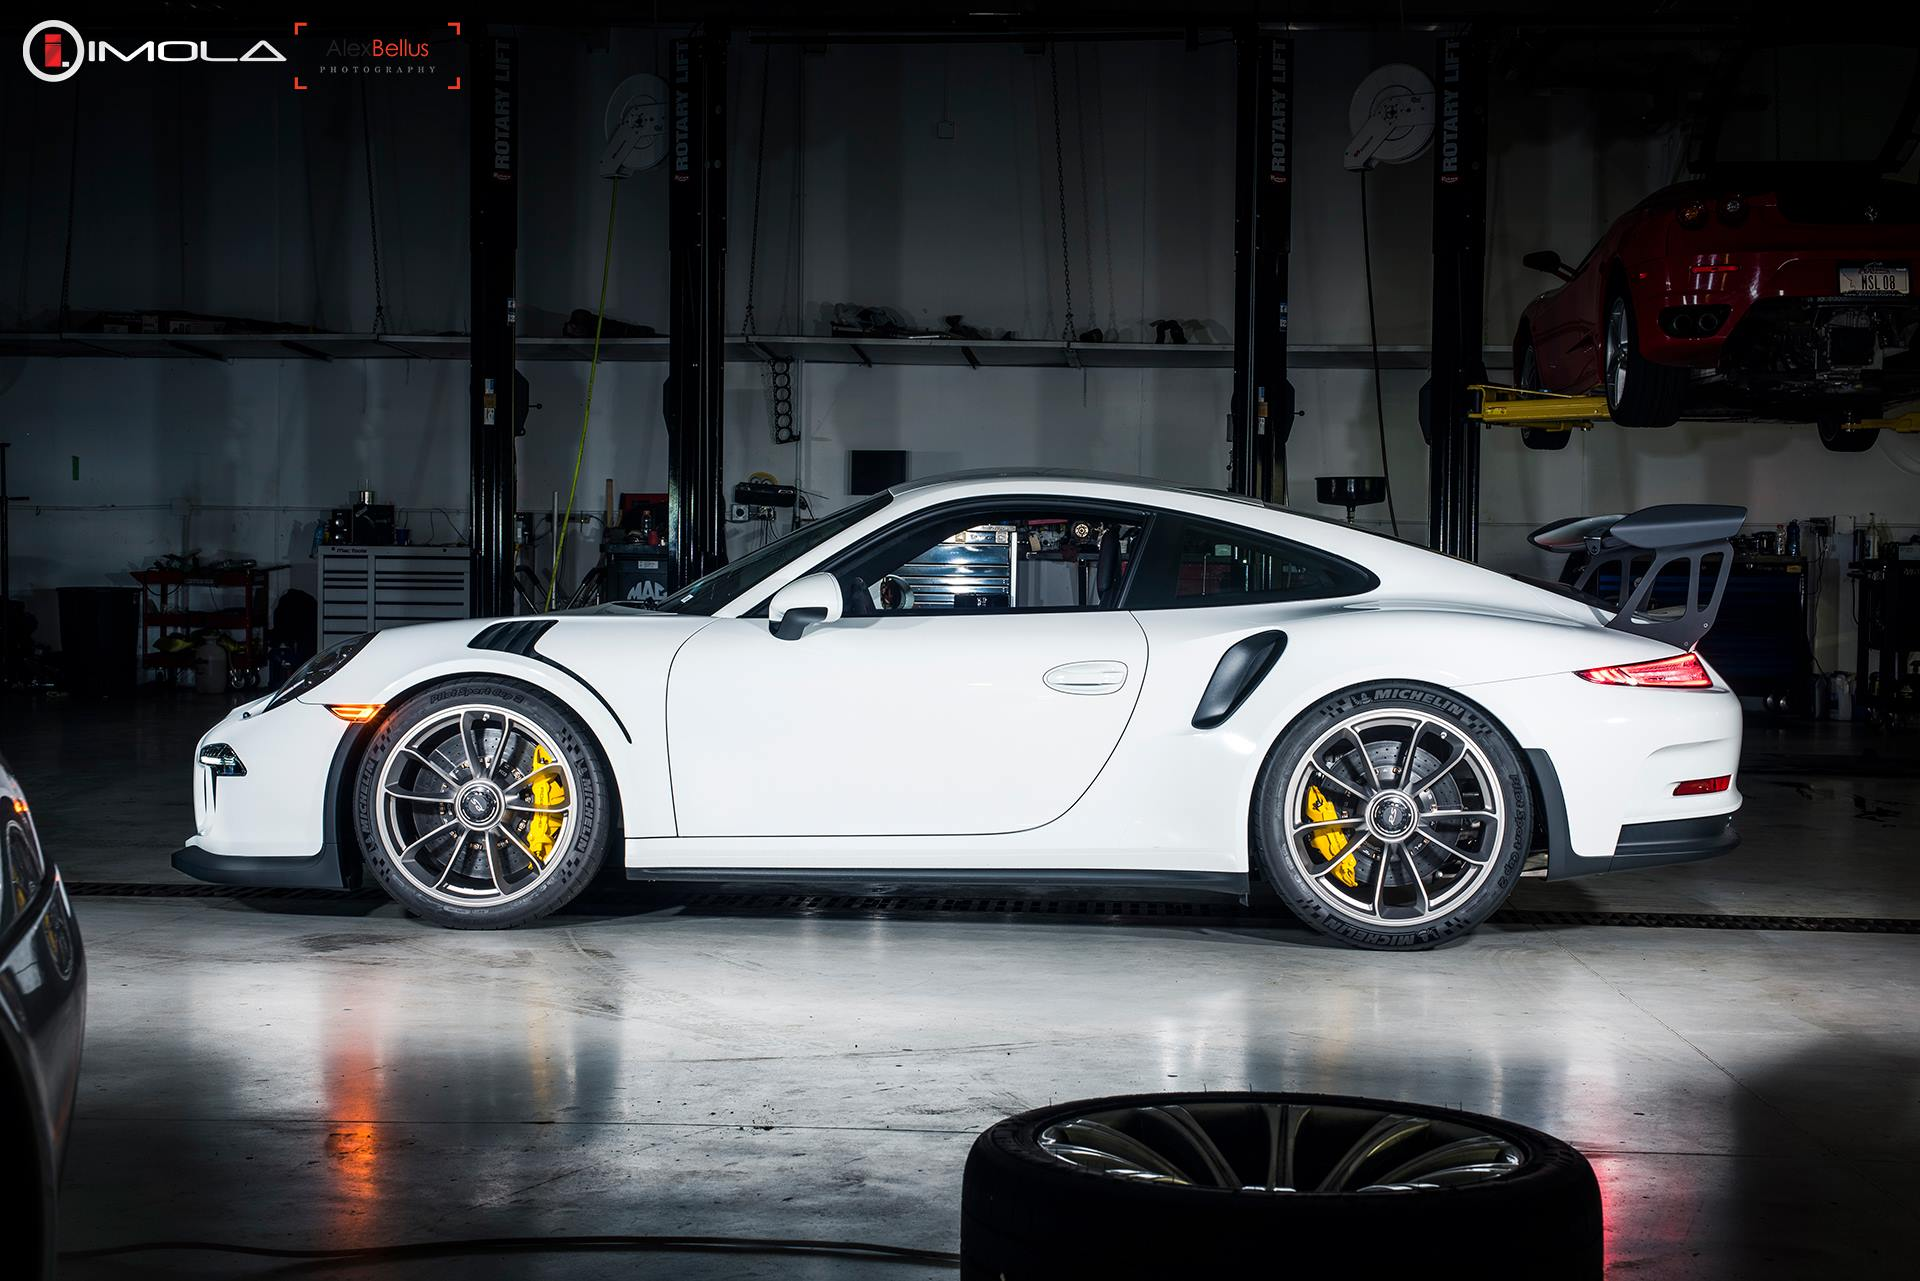 home car news meet the first 2016 porsche 911 gt3 rs in the us. Black Bedroom Furniture Sets. Home Design Ideas